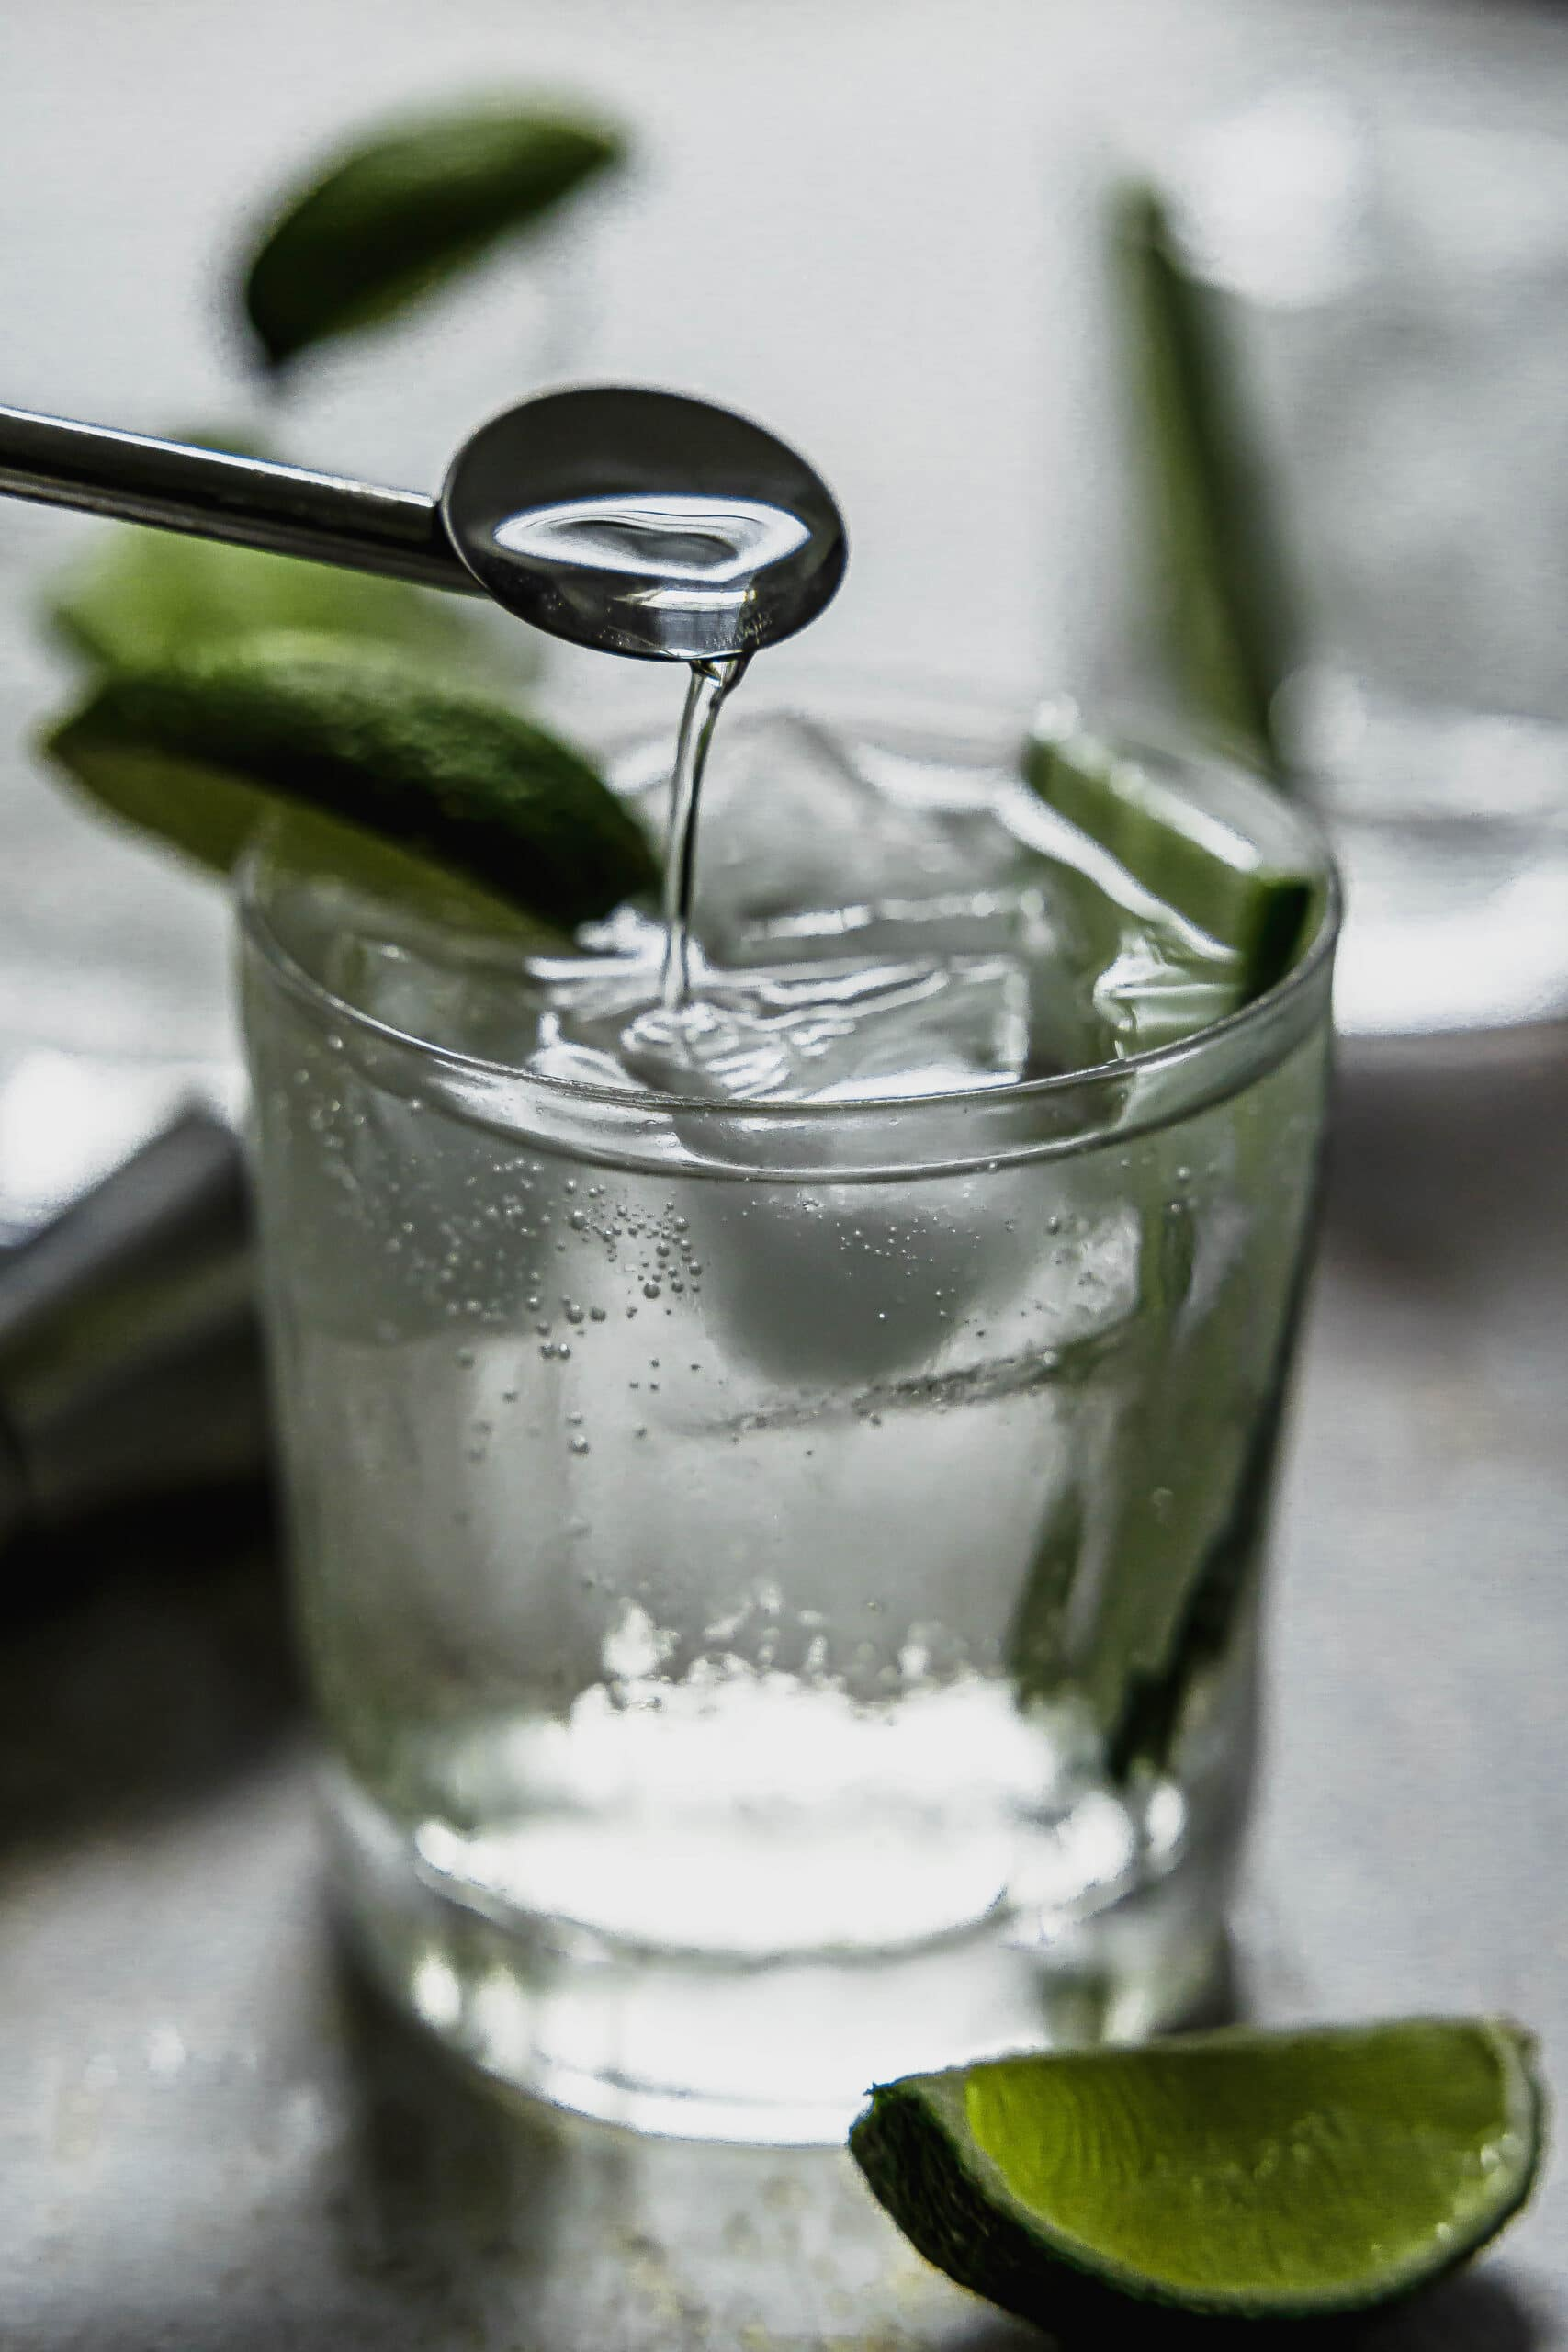 A stir spoon dripping gin and tonic into the glass after stirring.